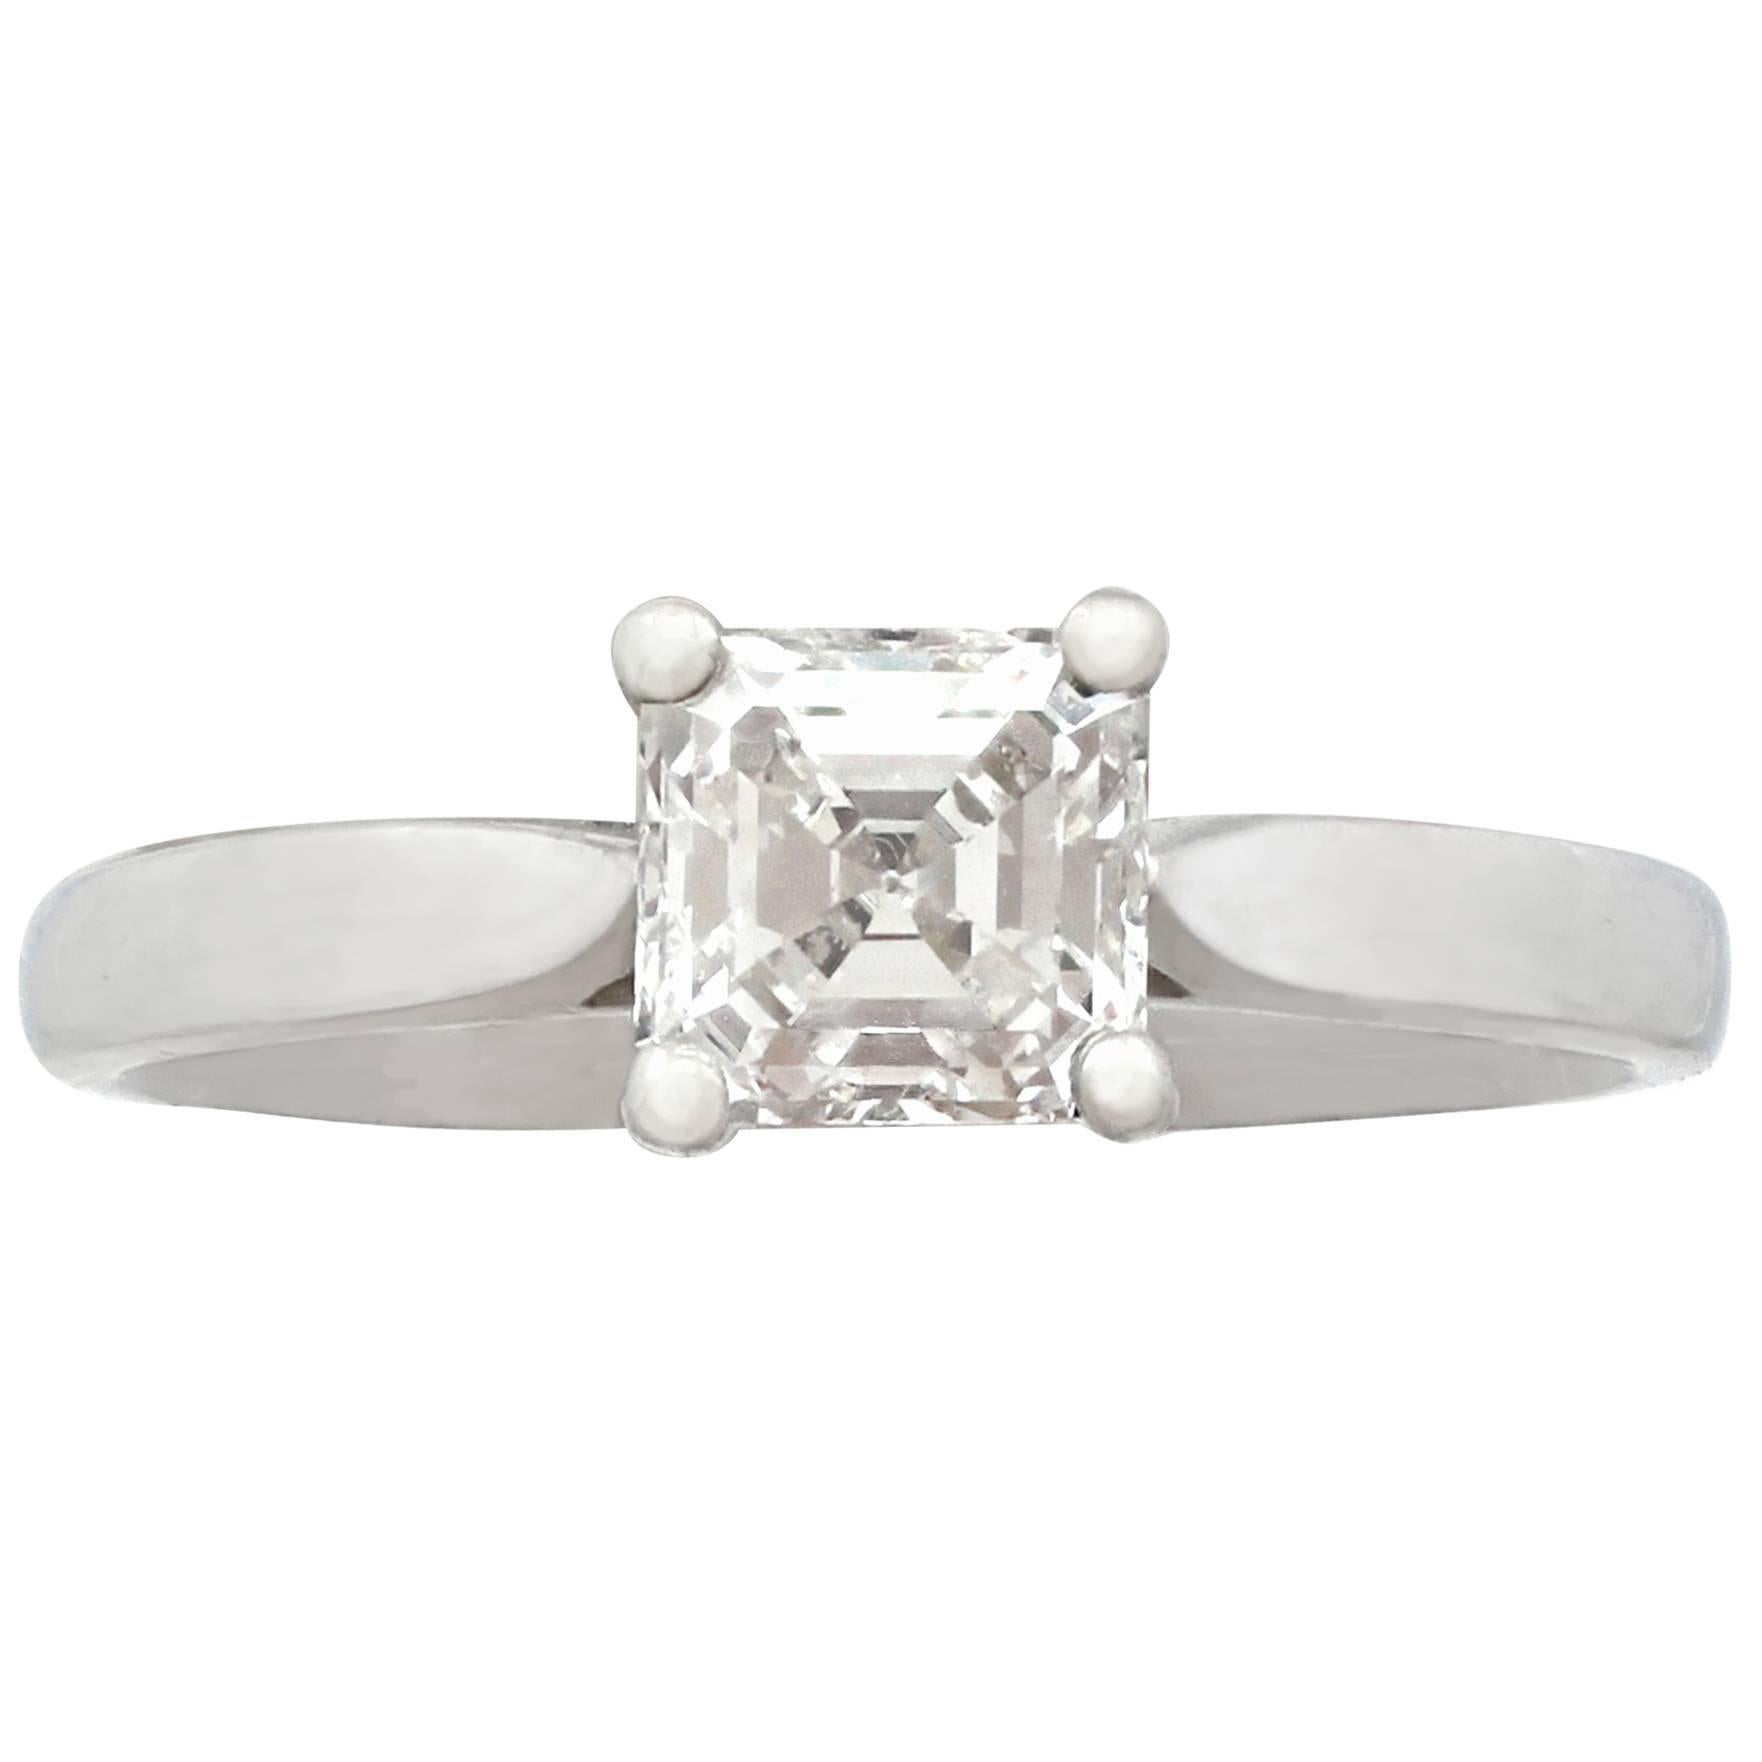 rings halo with cut me square cushion stone center topic show princess or your